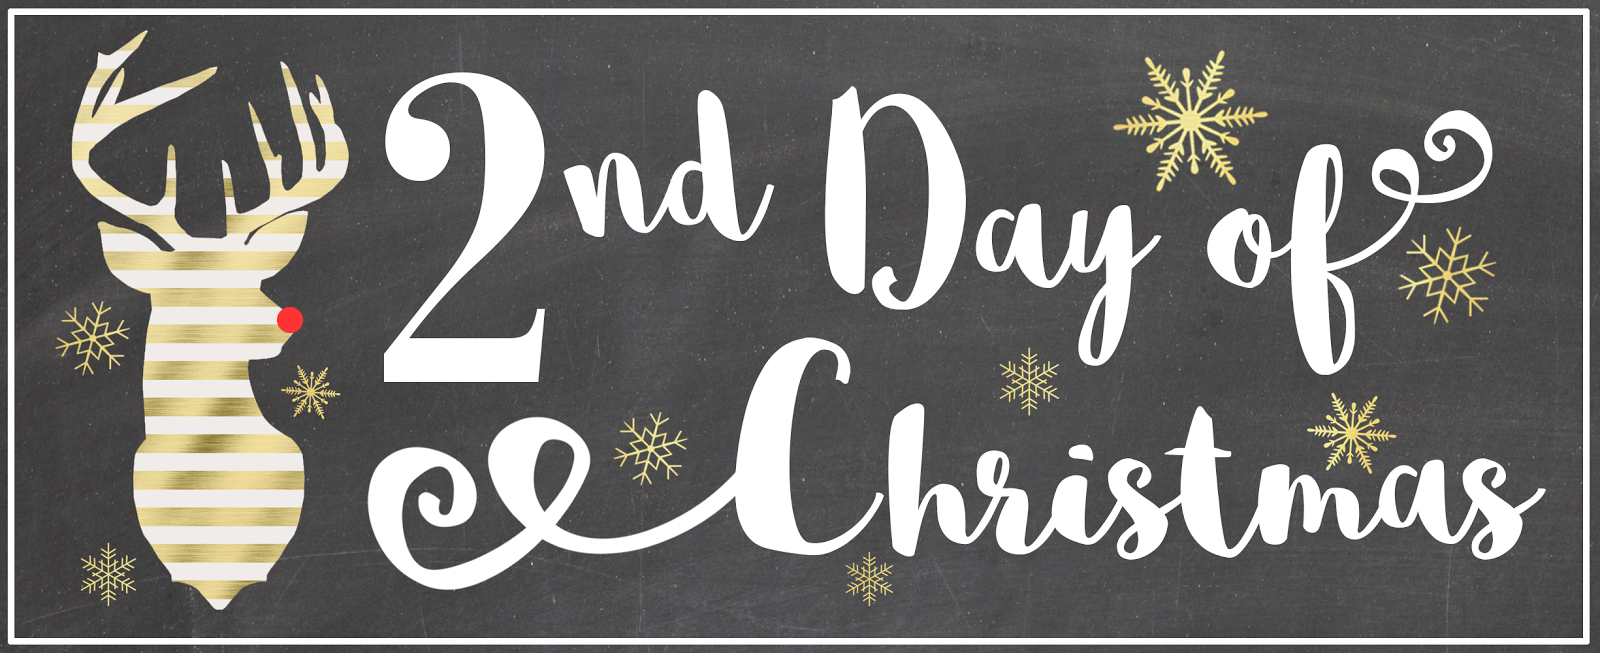 Aly Dosdall: 2nd day of christmas: document 2015 | december